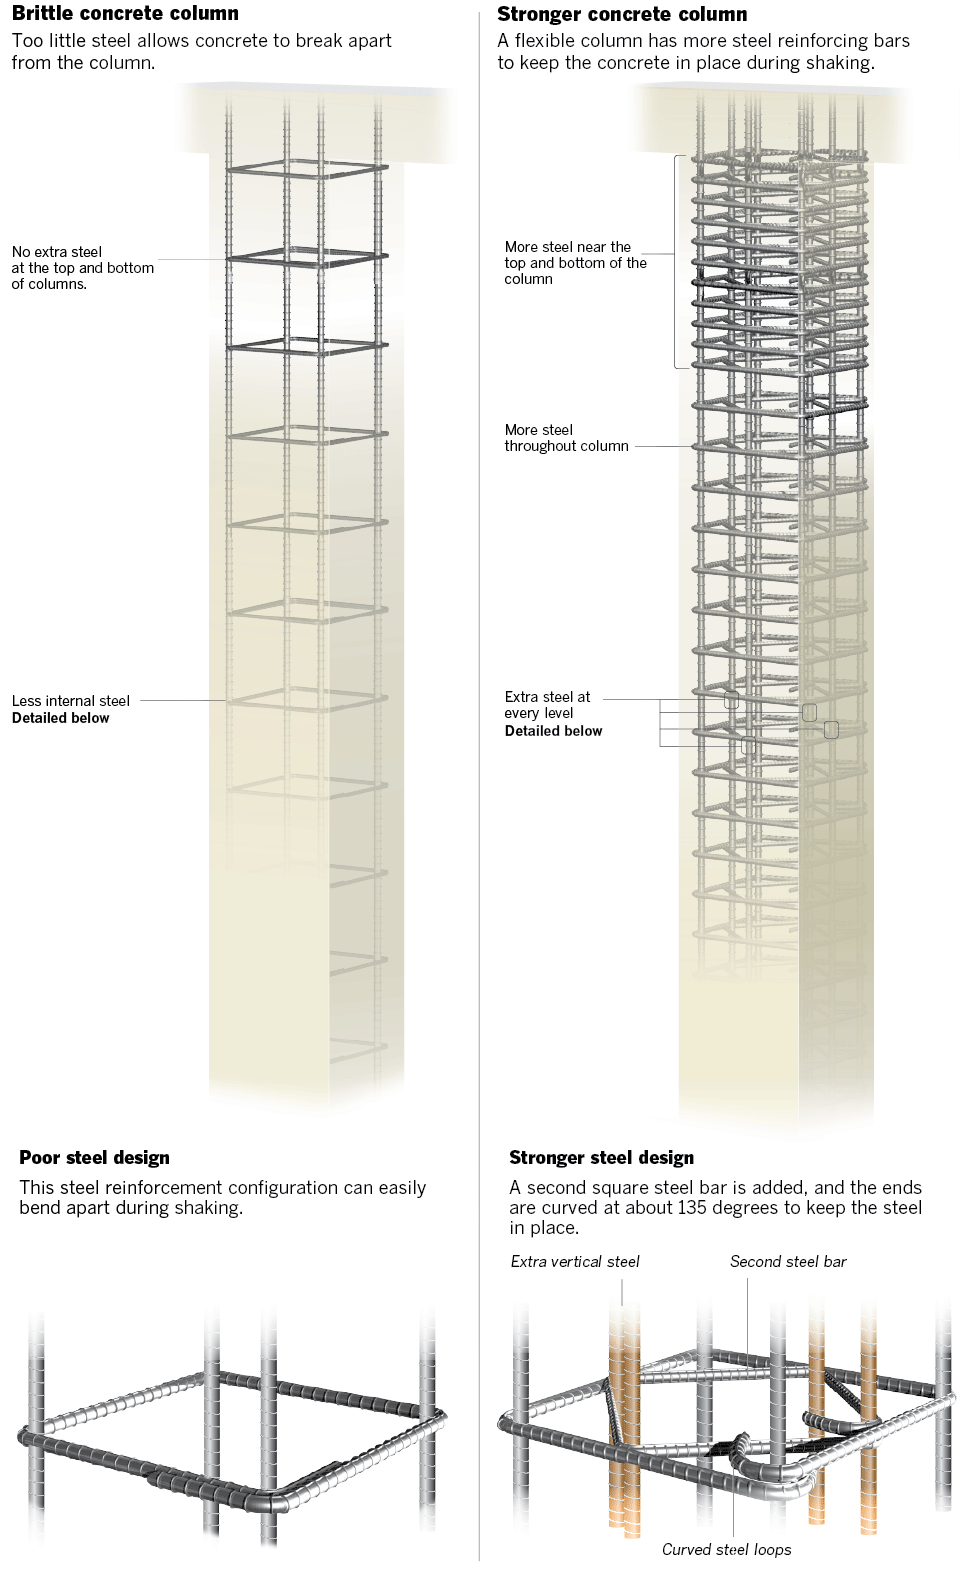 How concrete buildings fail in earthquakes